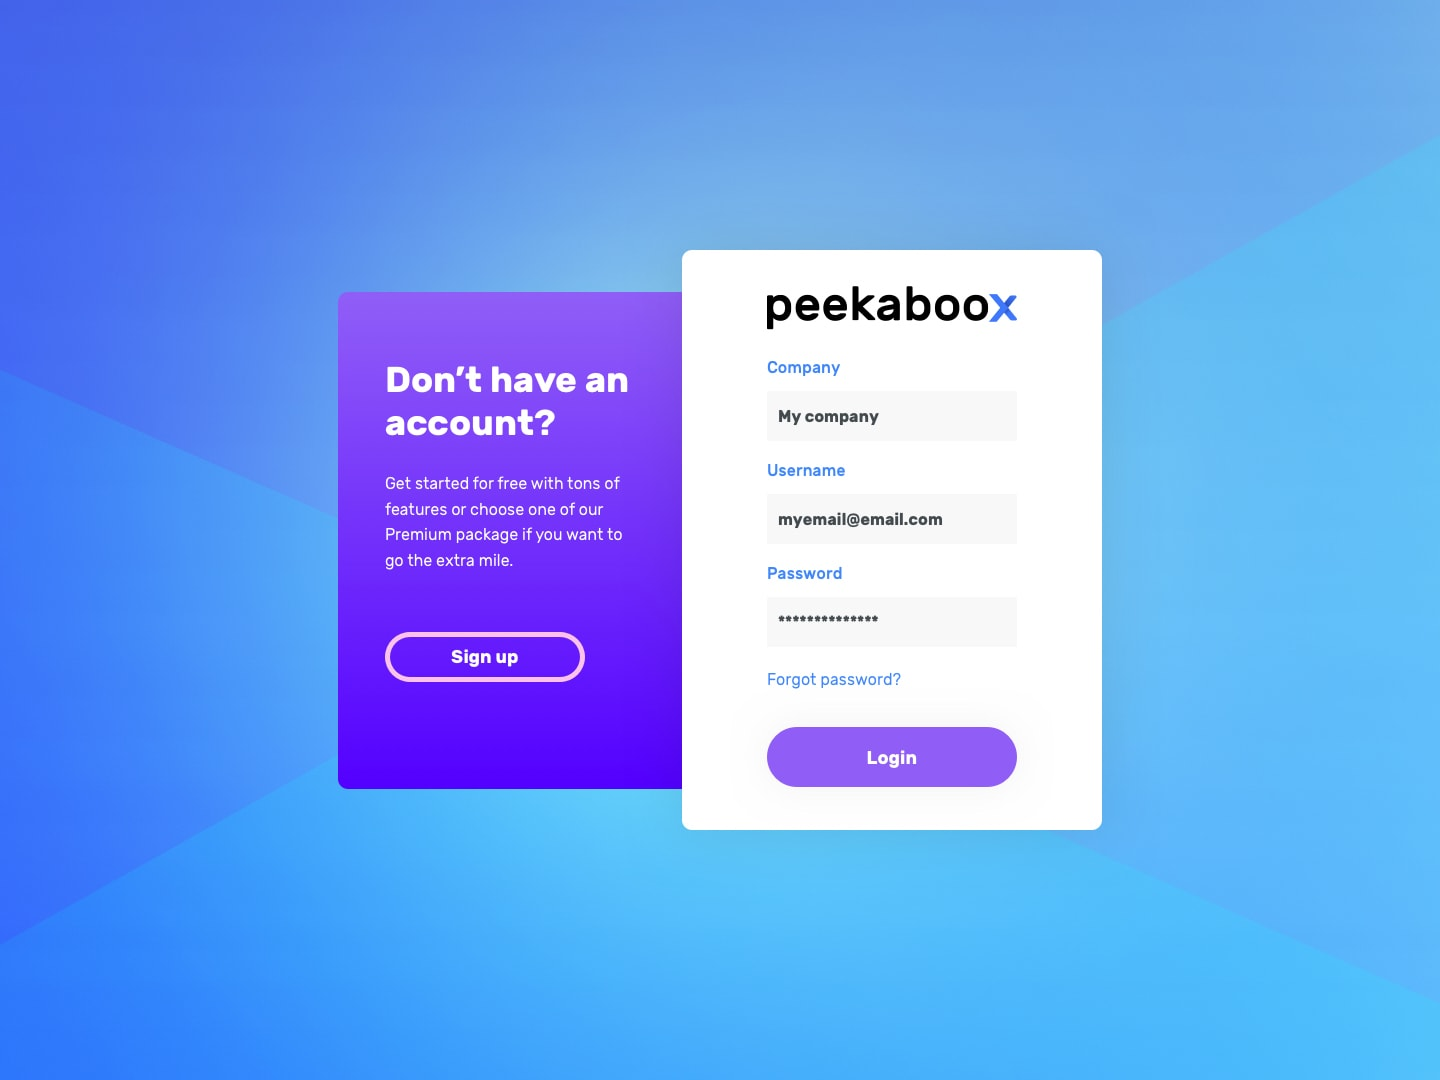 Peekaboox - How to login